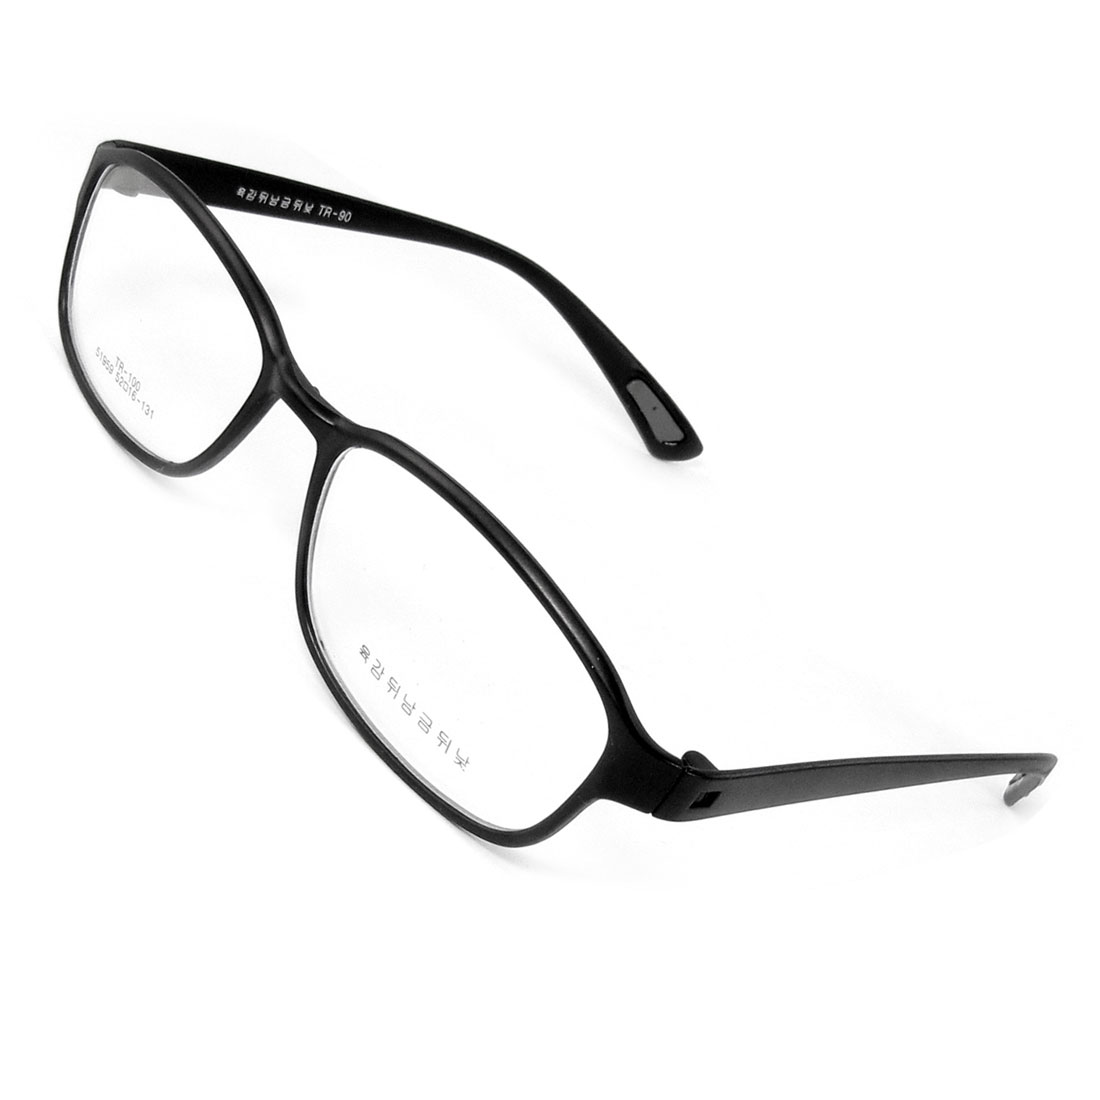 Man Plastic Arms Single Bridge Clear Lens MC Plain Glasses Spectacles